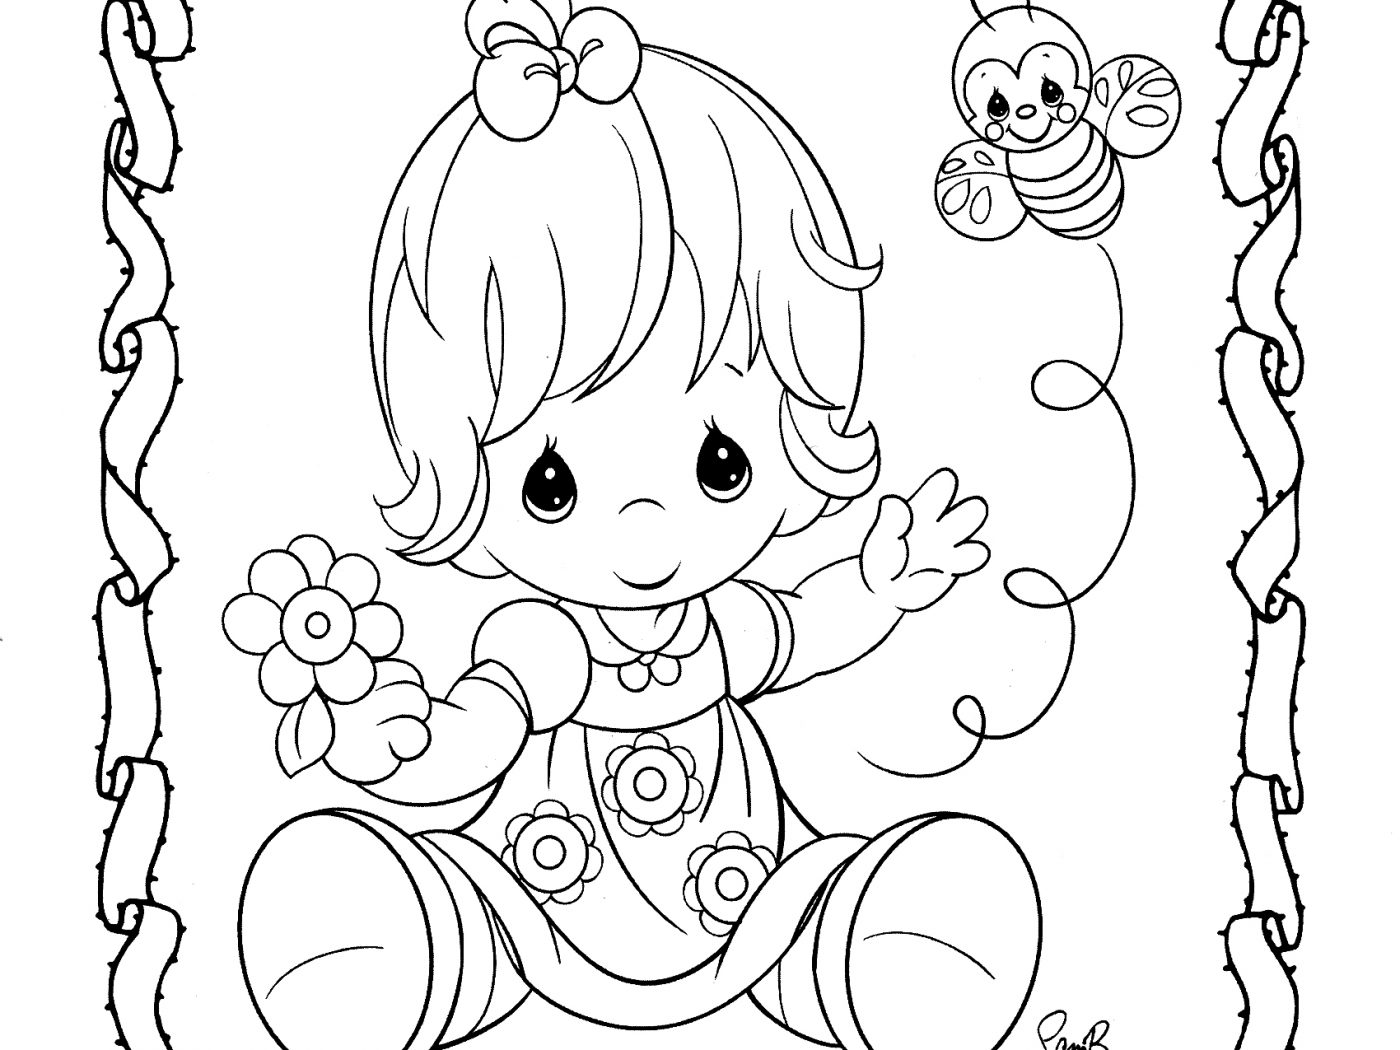 1400x1050 Precious Moments Baby Shower Coloring Pages Free Printout And Page